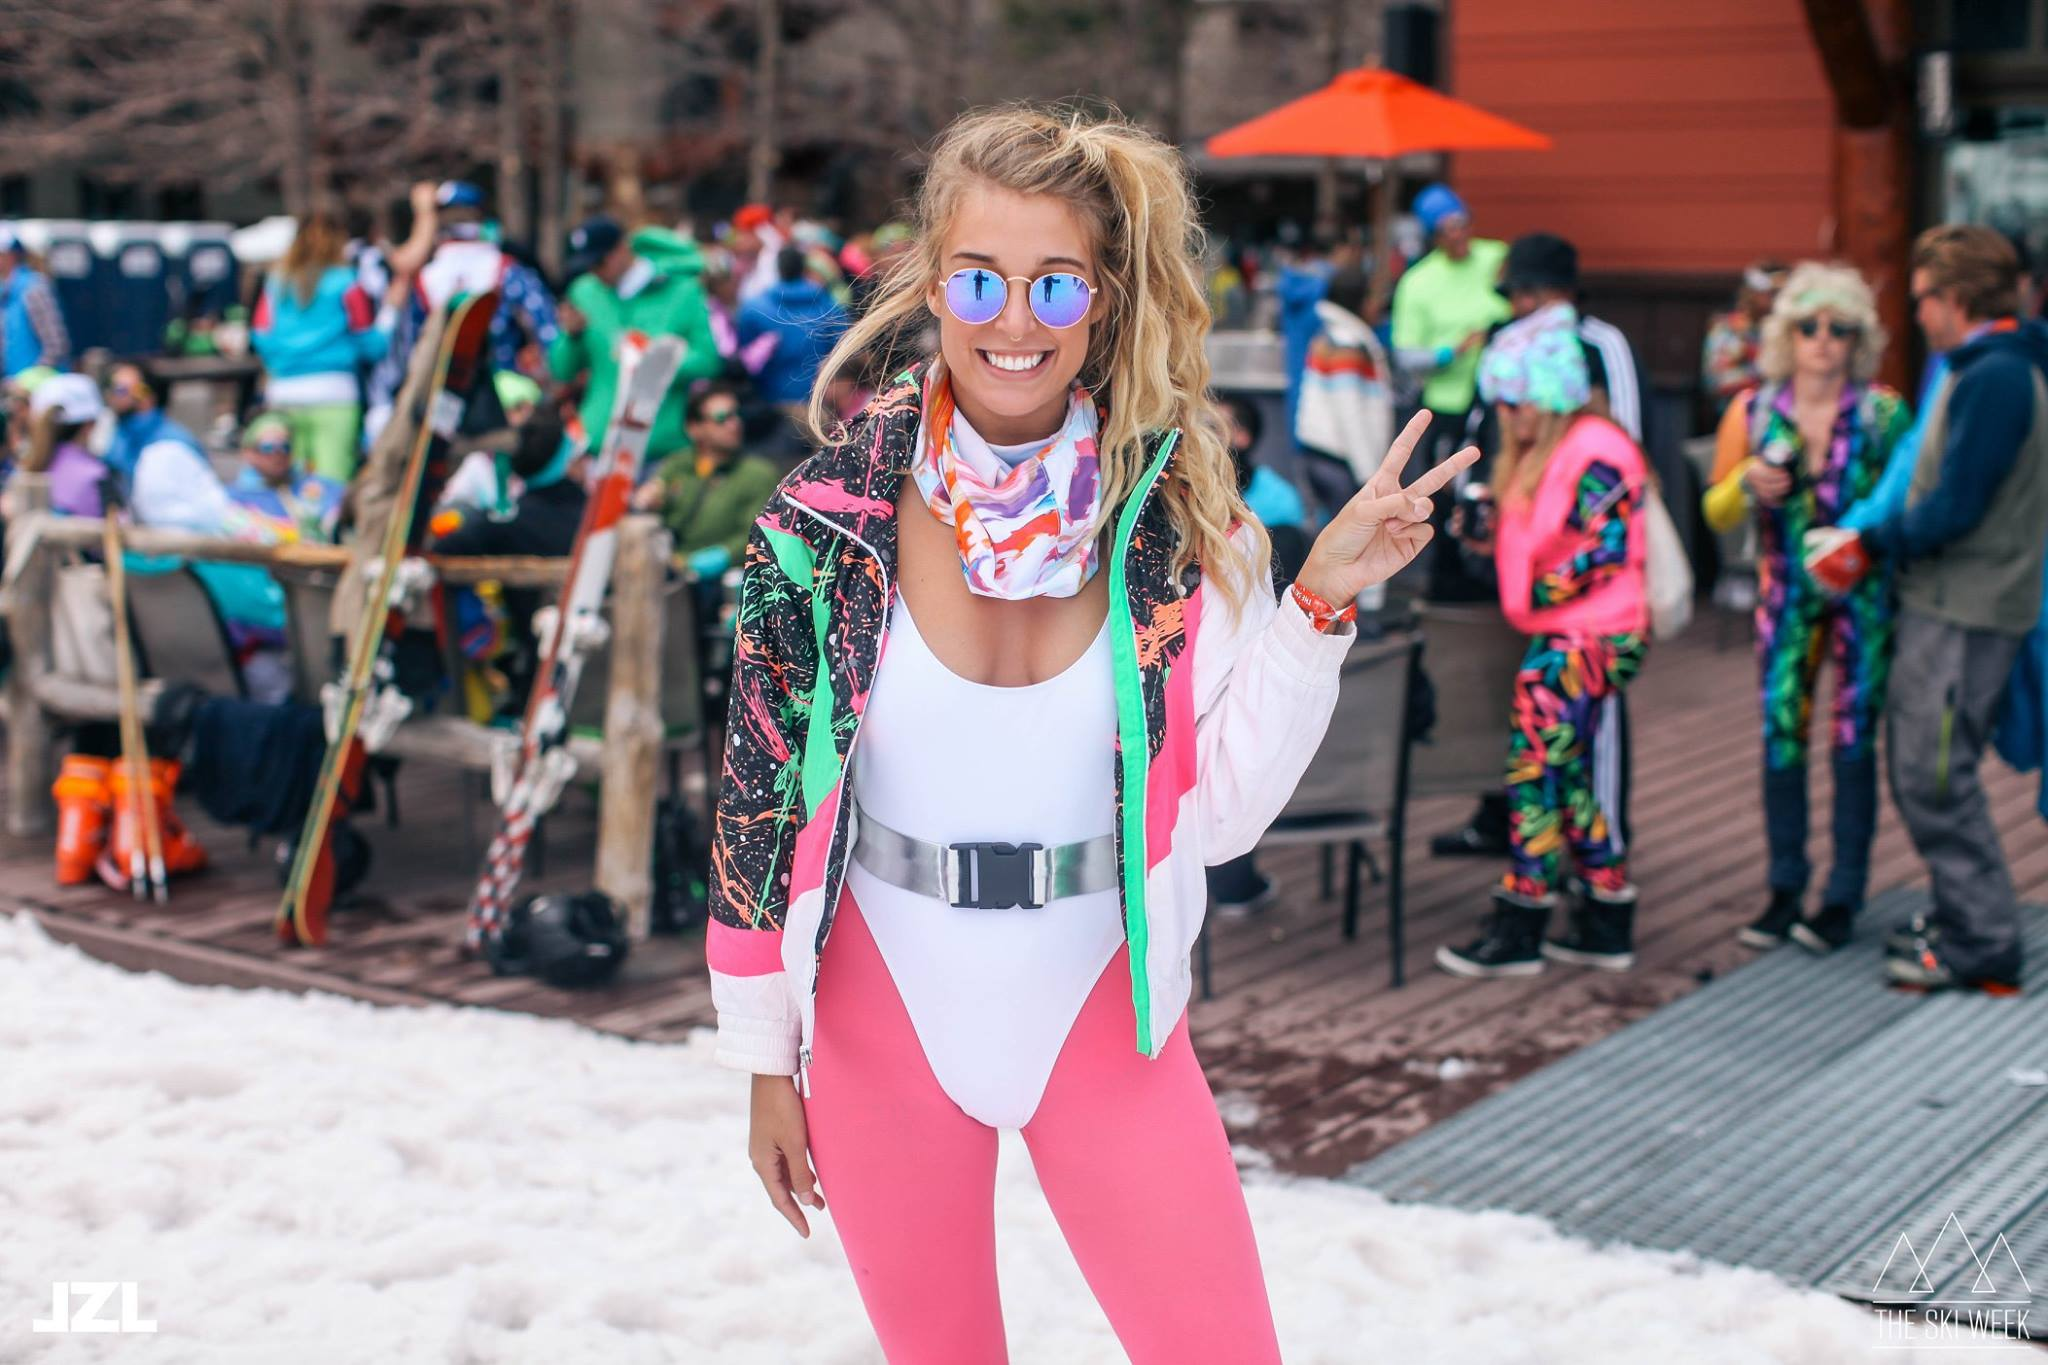 The Ski Week - Where: Aspen Snowmass, ColoradoWhen: April 8th-15thWhat: Aspen is the only American resort to host this traveling festival,ensuring an influx of international revelers to an already swanky town (just check out our Escape Guide). Other destinations include Austria, Japan, and Canada. We also have to give a shoutout to Aspen Gay Ski Week:forget Black Diamonds,those all-night dance parties are the real test of your endurance.